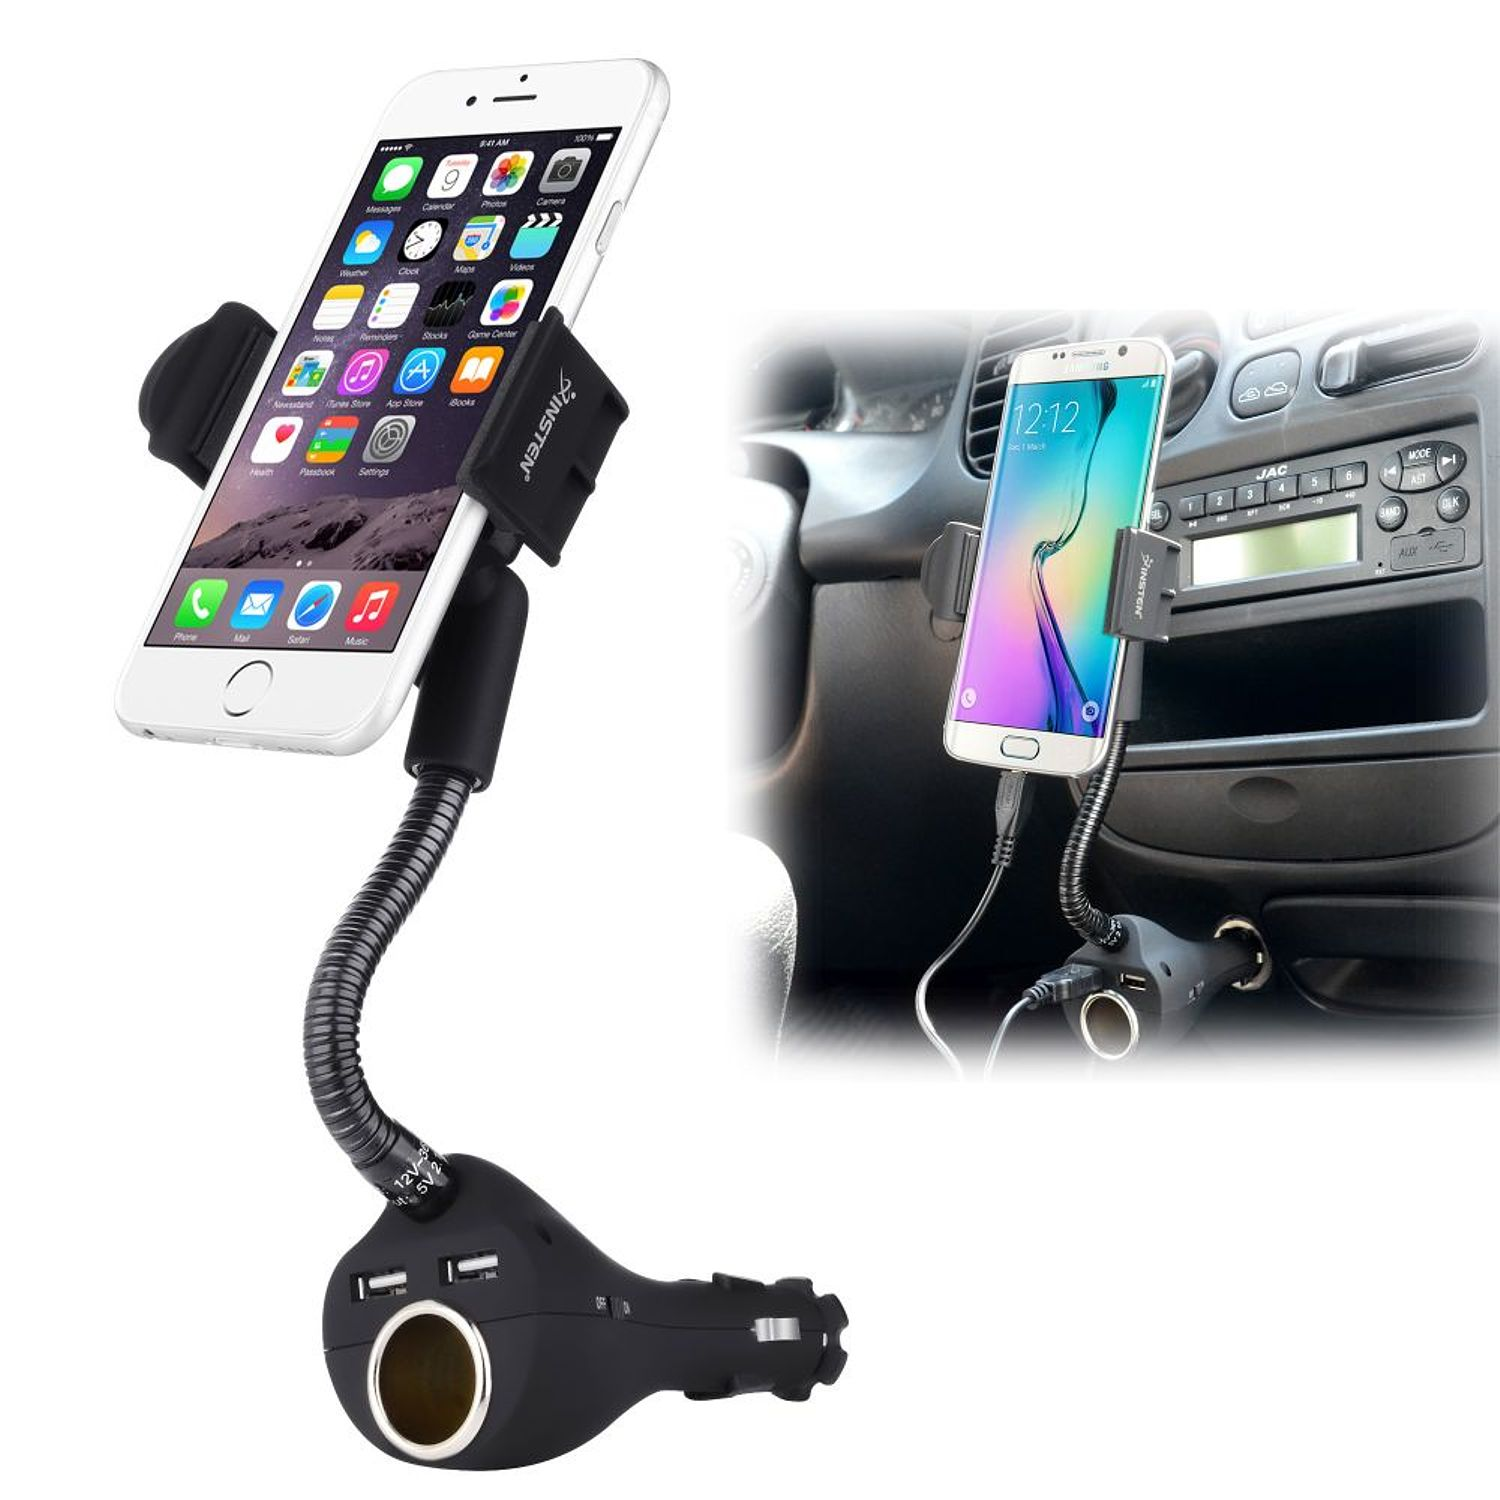 Car Mount Phone Holder with 2-Port USB Charger & Socket For Apple iPhone X 7 8 Plus 6S 6 SE 5S by Insten/ Samsung Galaxy S9 S9+ Plus S8 S7 S6 J7 J3 J1 Note 8 / LG G6 G5 K7 K8v K20 Stylo 3 2